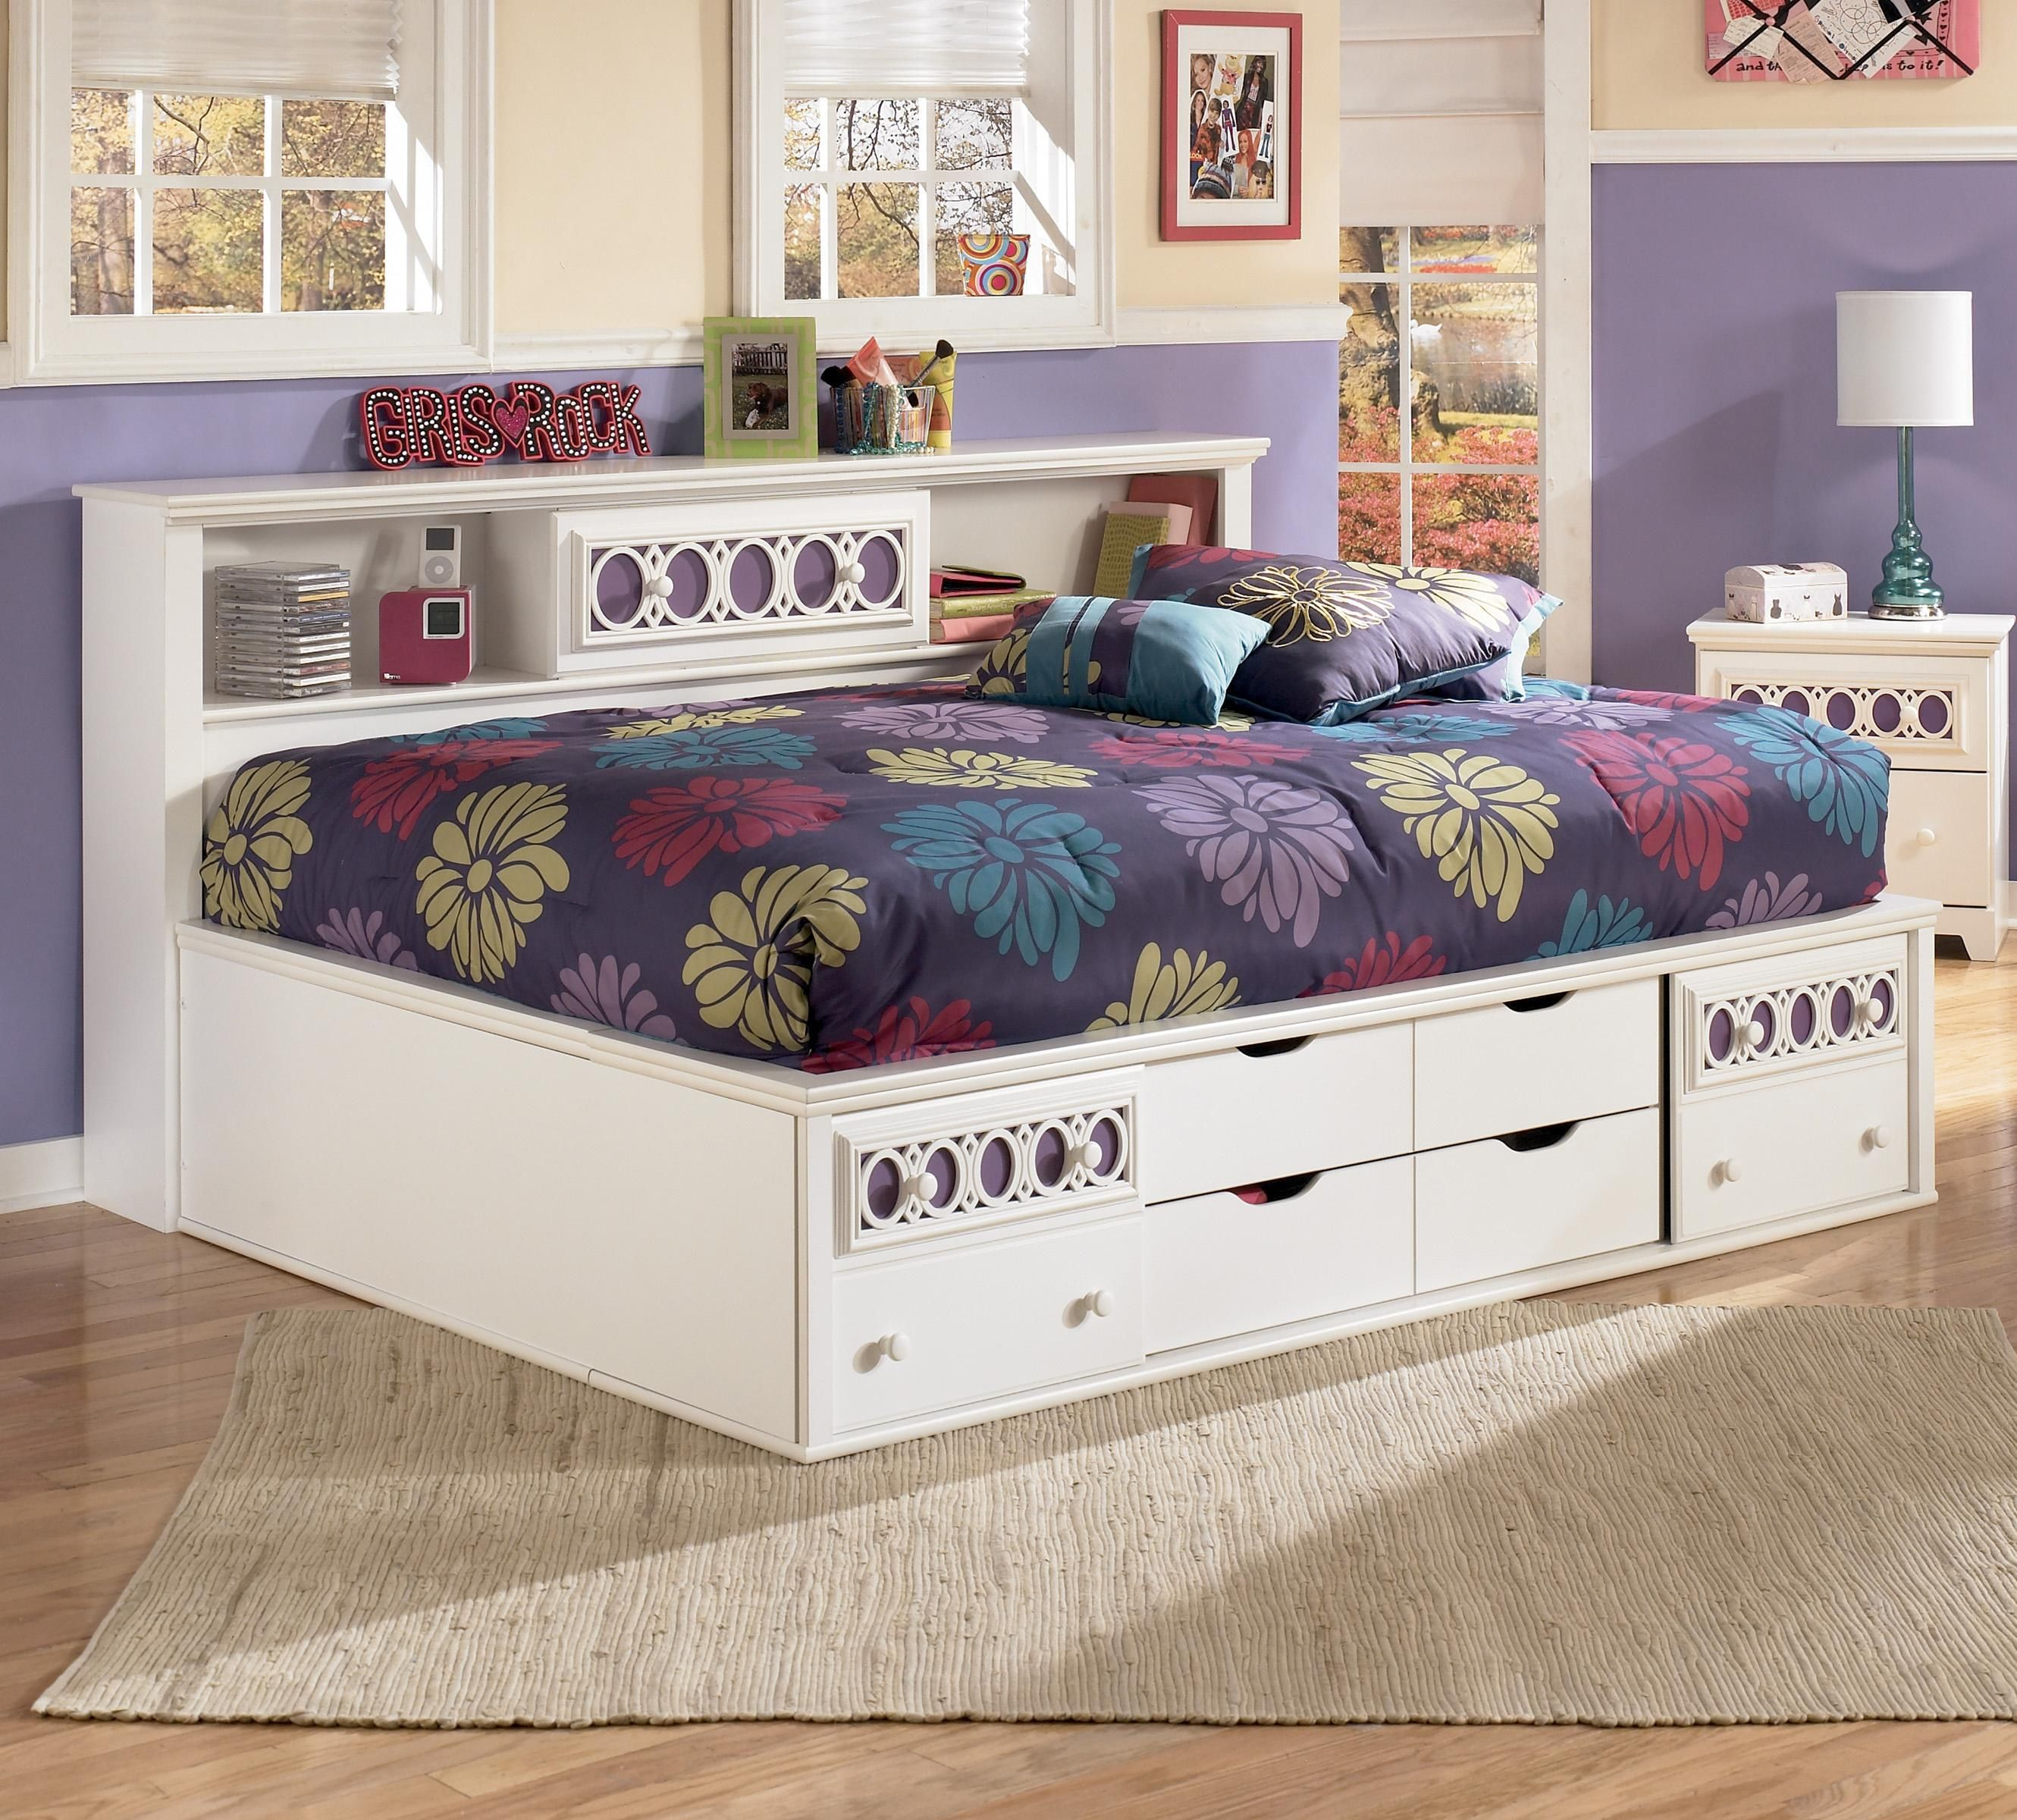 Ashley Furniture Kids Bed Modern Contemporary Furniture Check more